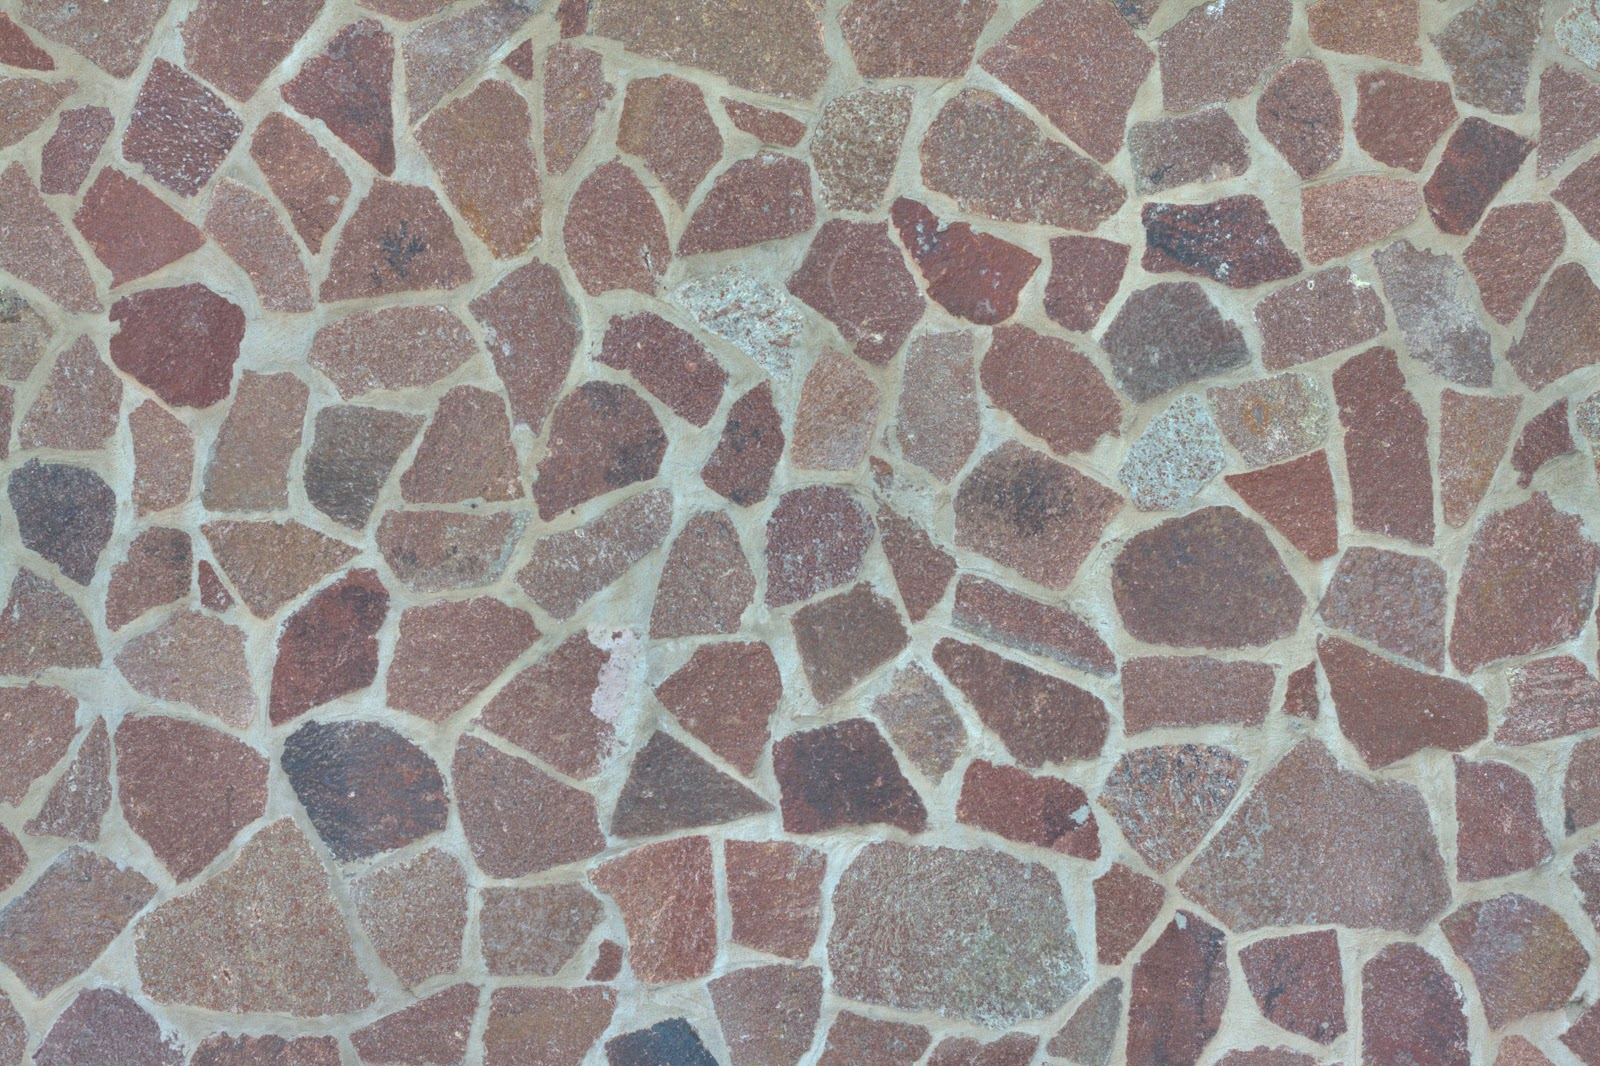 High Resolution Seamless Textures: Stone giraffe floor ...